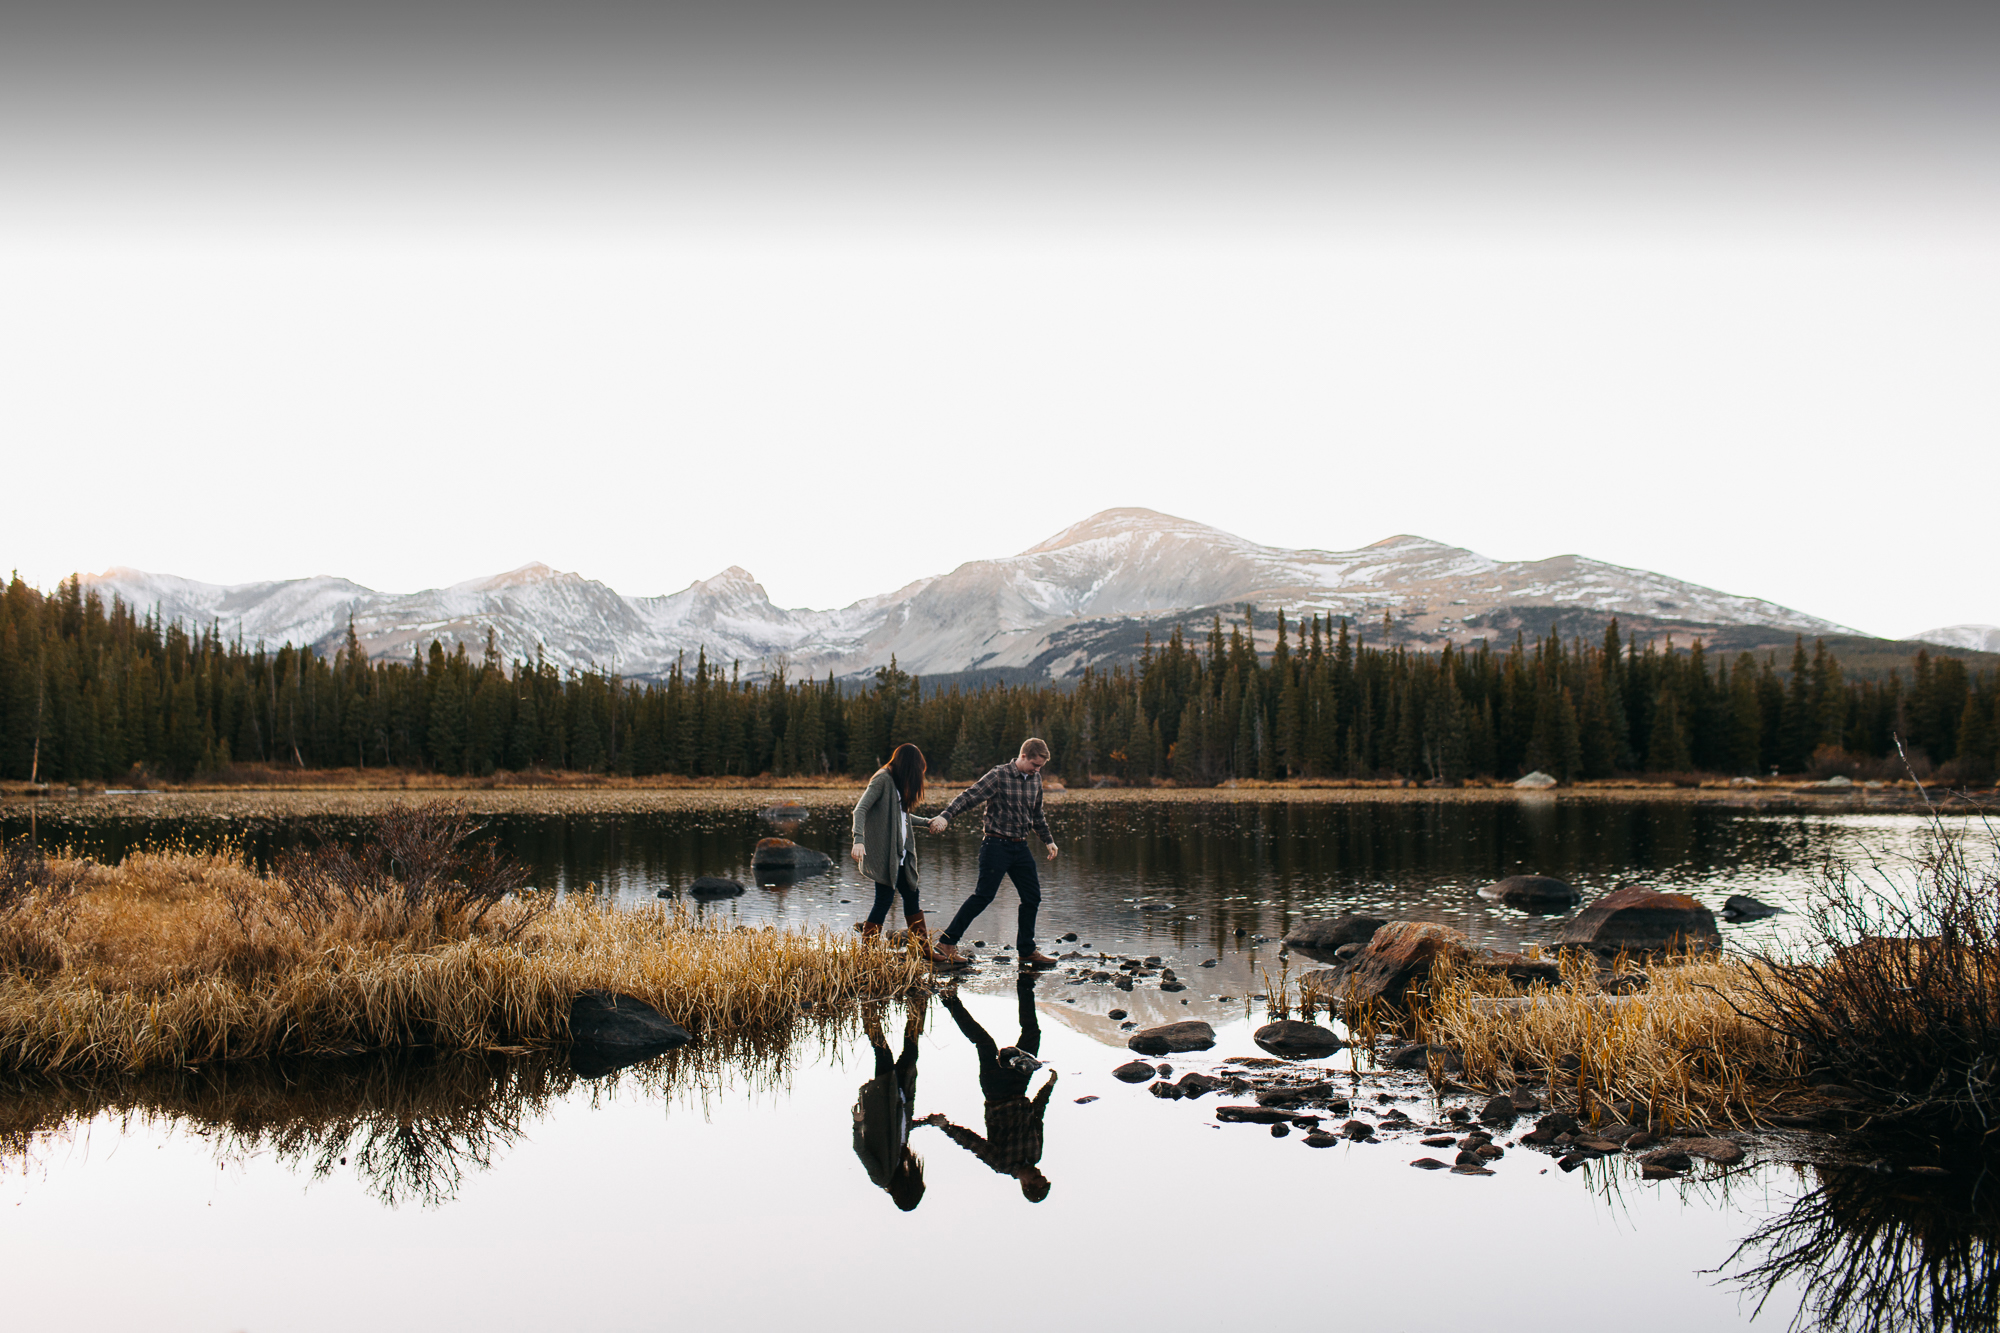 Colorado-Adventure-Mountain-Engagement-Photographer_03 copy.jpg